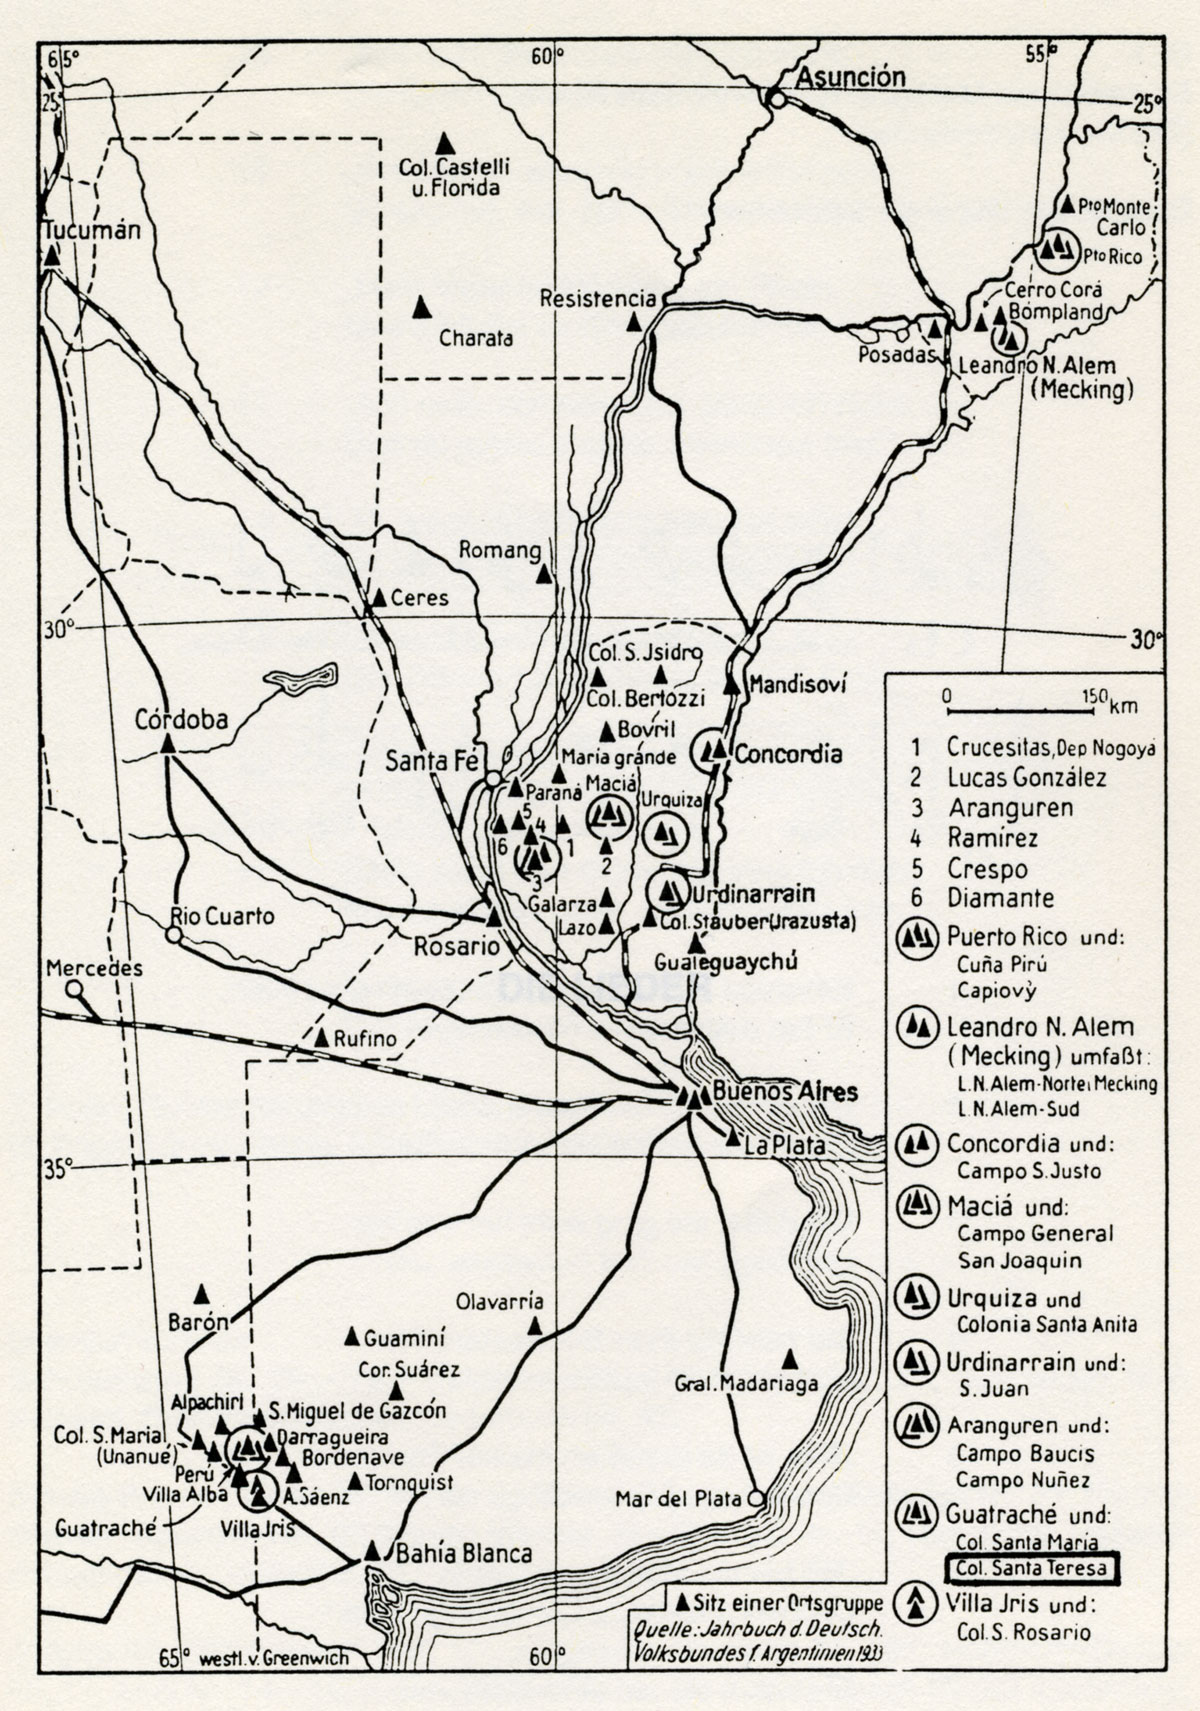 Map of settlements in Argentina